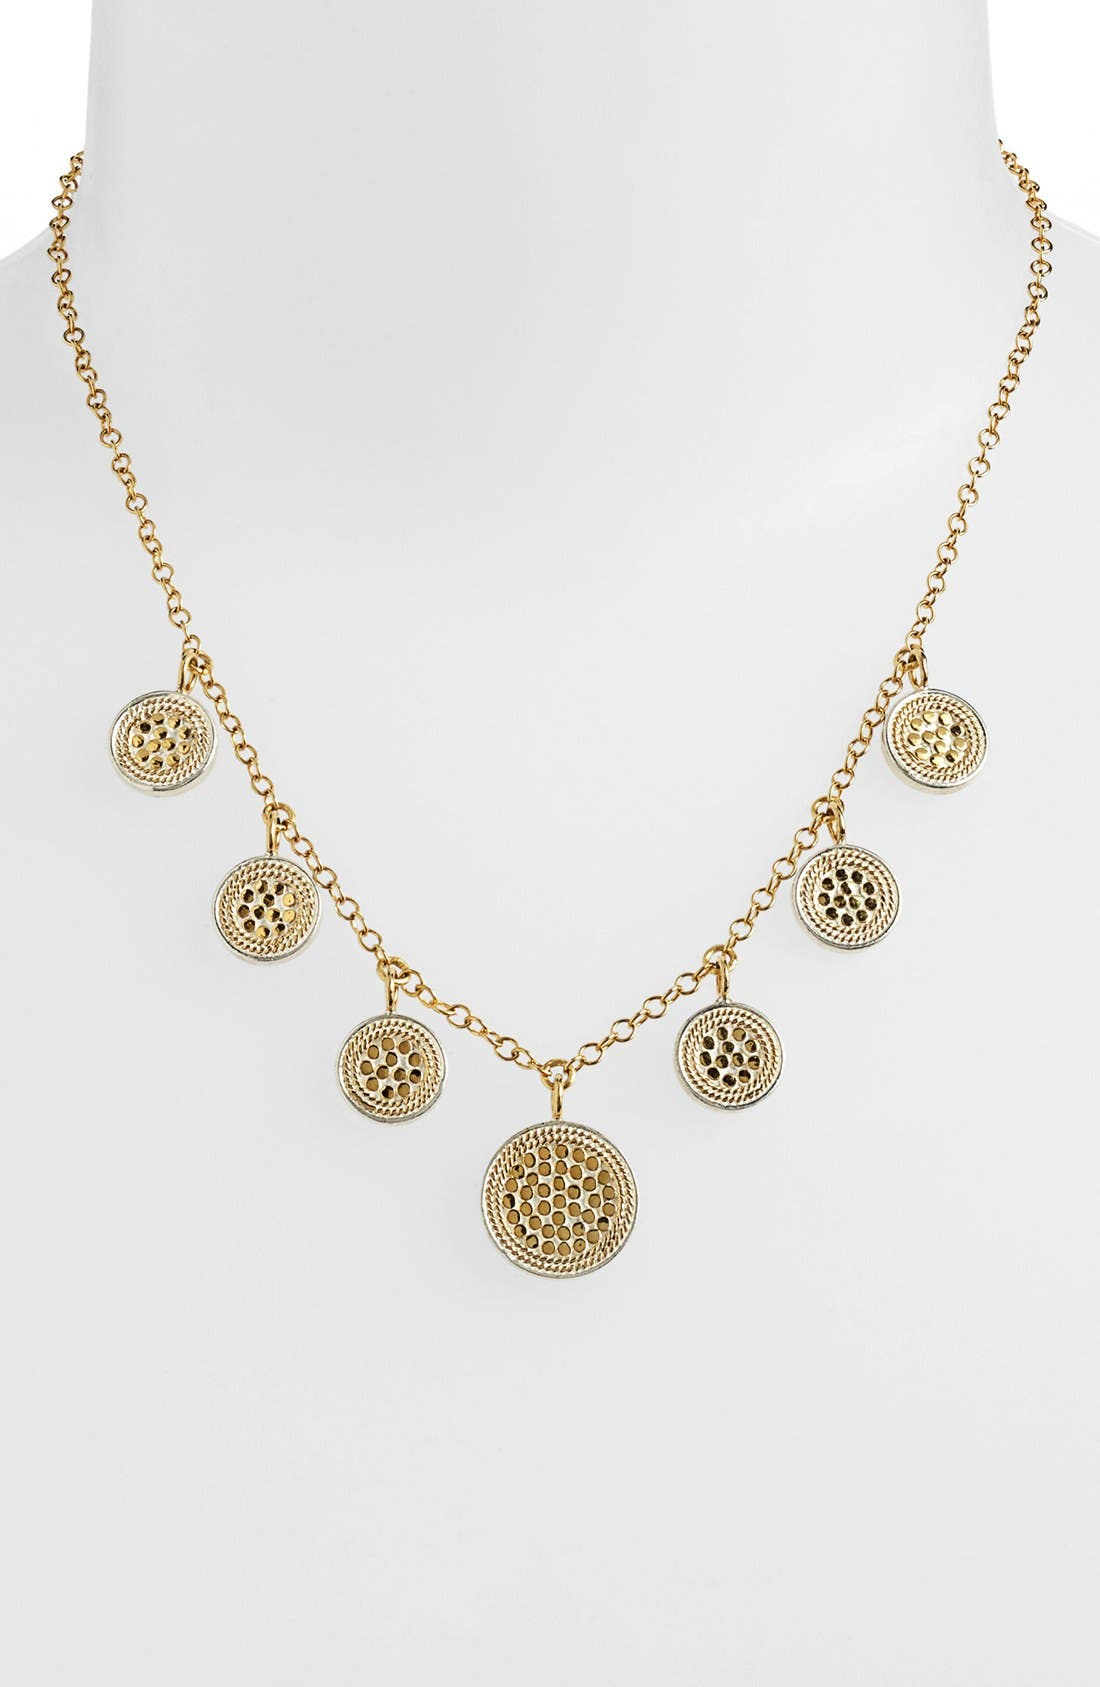 Alternate Image 1 Selected - Anna Beck 'Gili' 7-Disc Charm Necklace